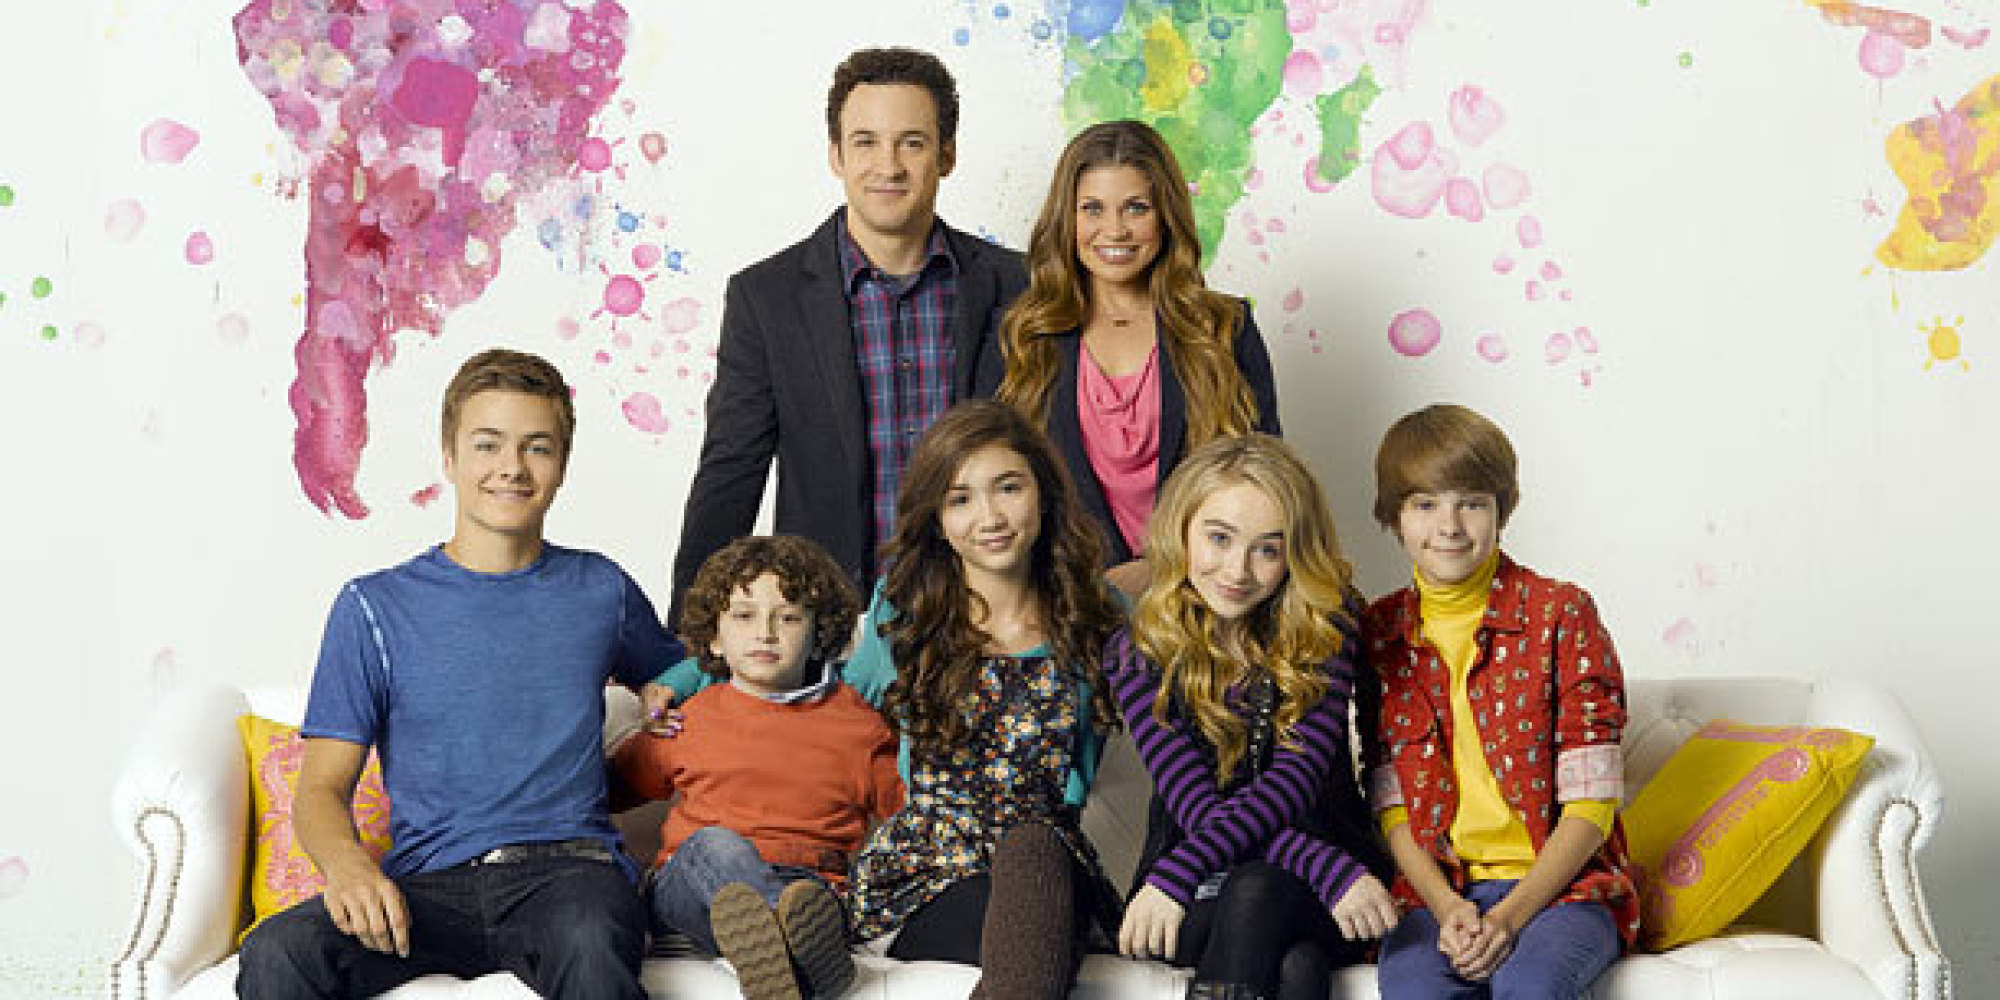 girl meets world images 'girl meets world' — pics back to post 'girl meets world' (image corutesy of of facebook) skip ad 'girl meets world' (image corutesy of disney) next.